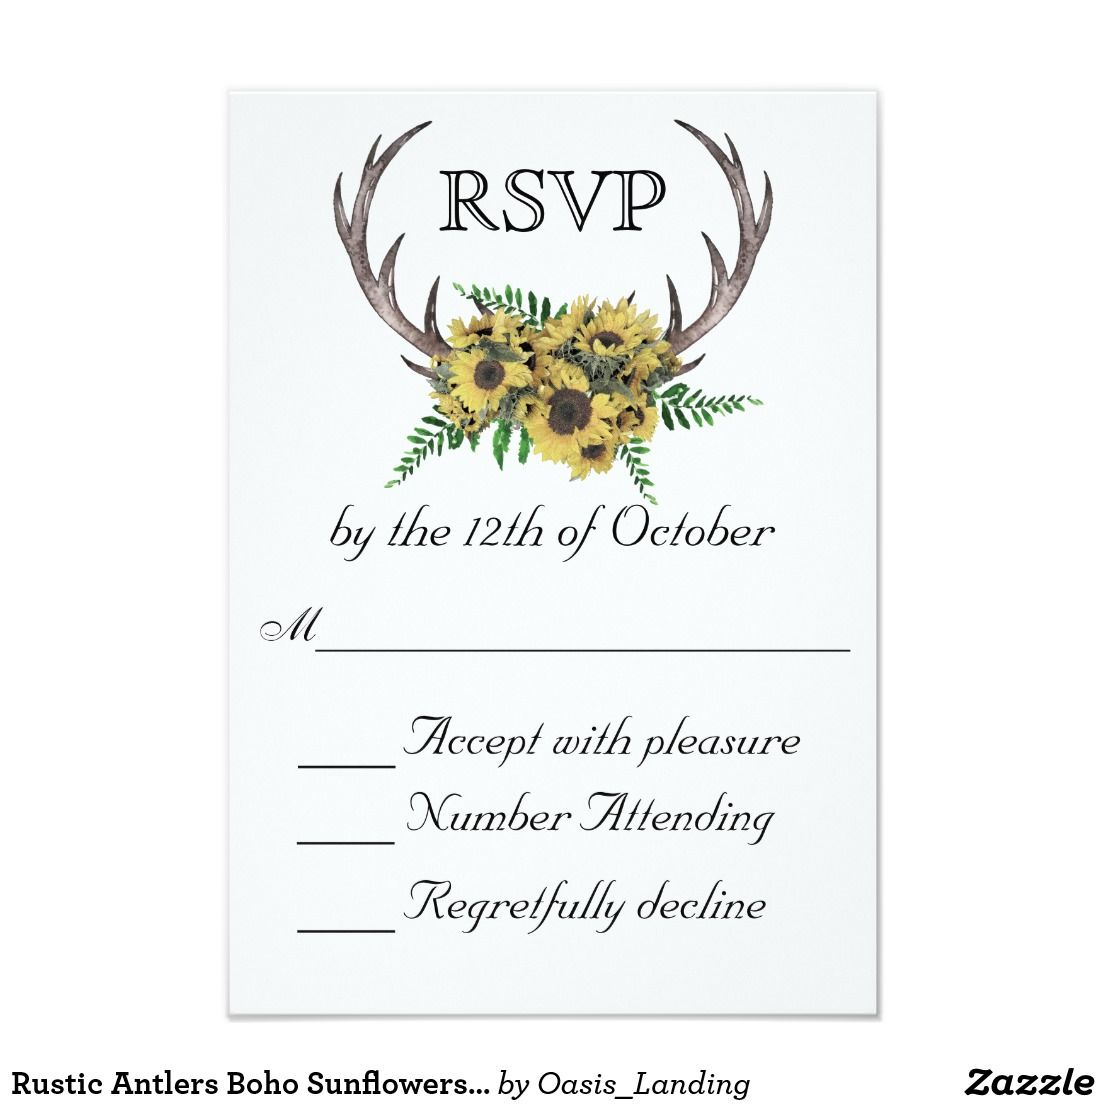 Rustic Antlers Boho Sunflowers Wedding Rsvp Card With Enchanting Style This Design Features Deer Horns Beautifully: Sunflower Wedding Invitations Rustic Antlers At Reisefeber.org